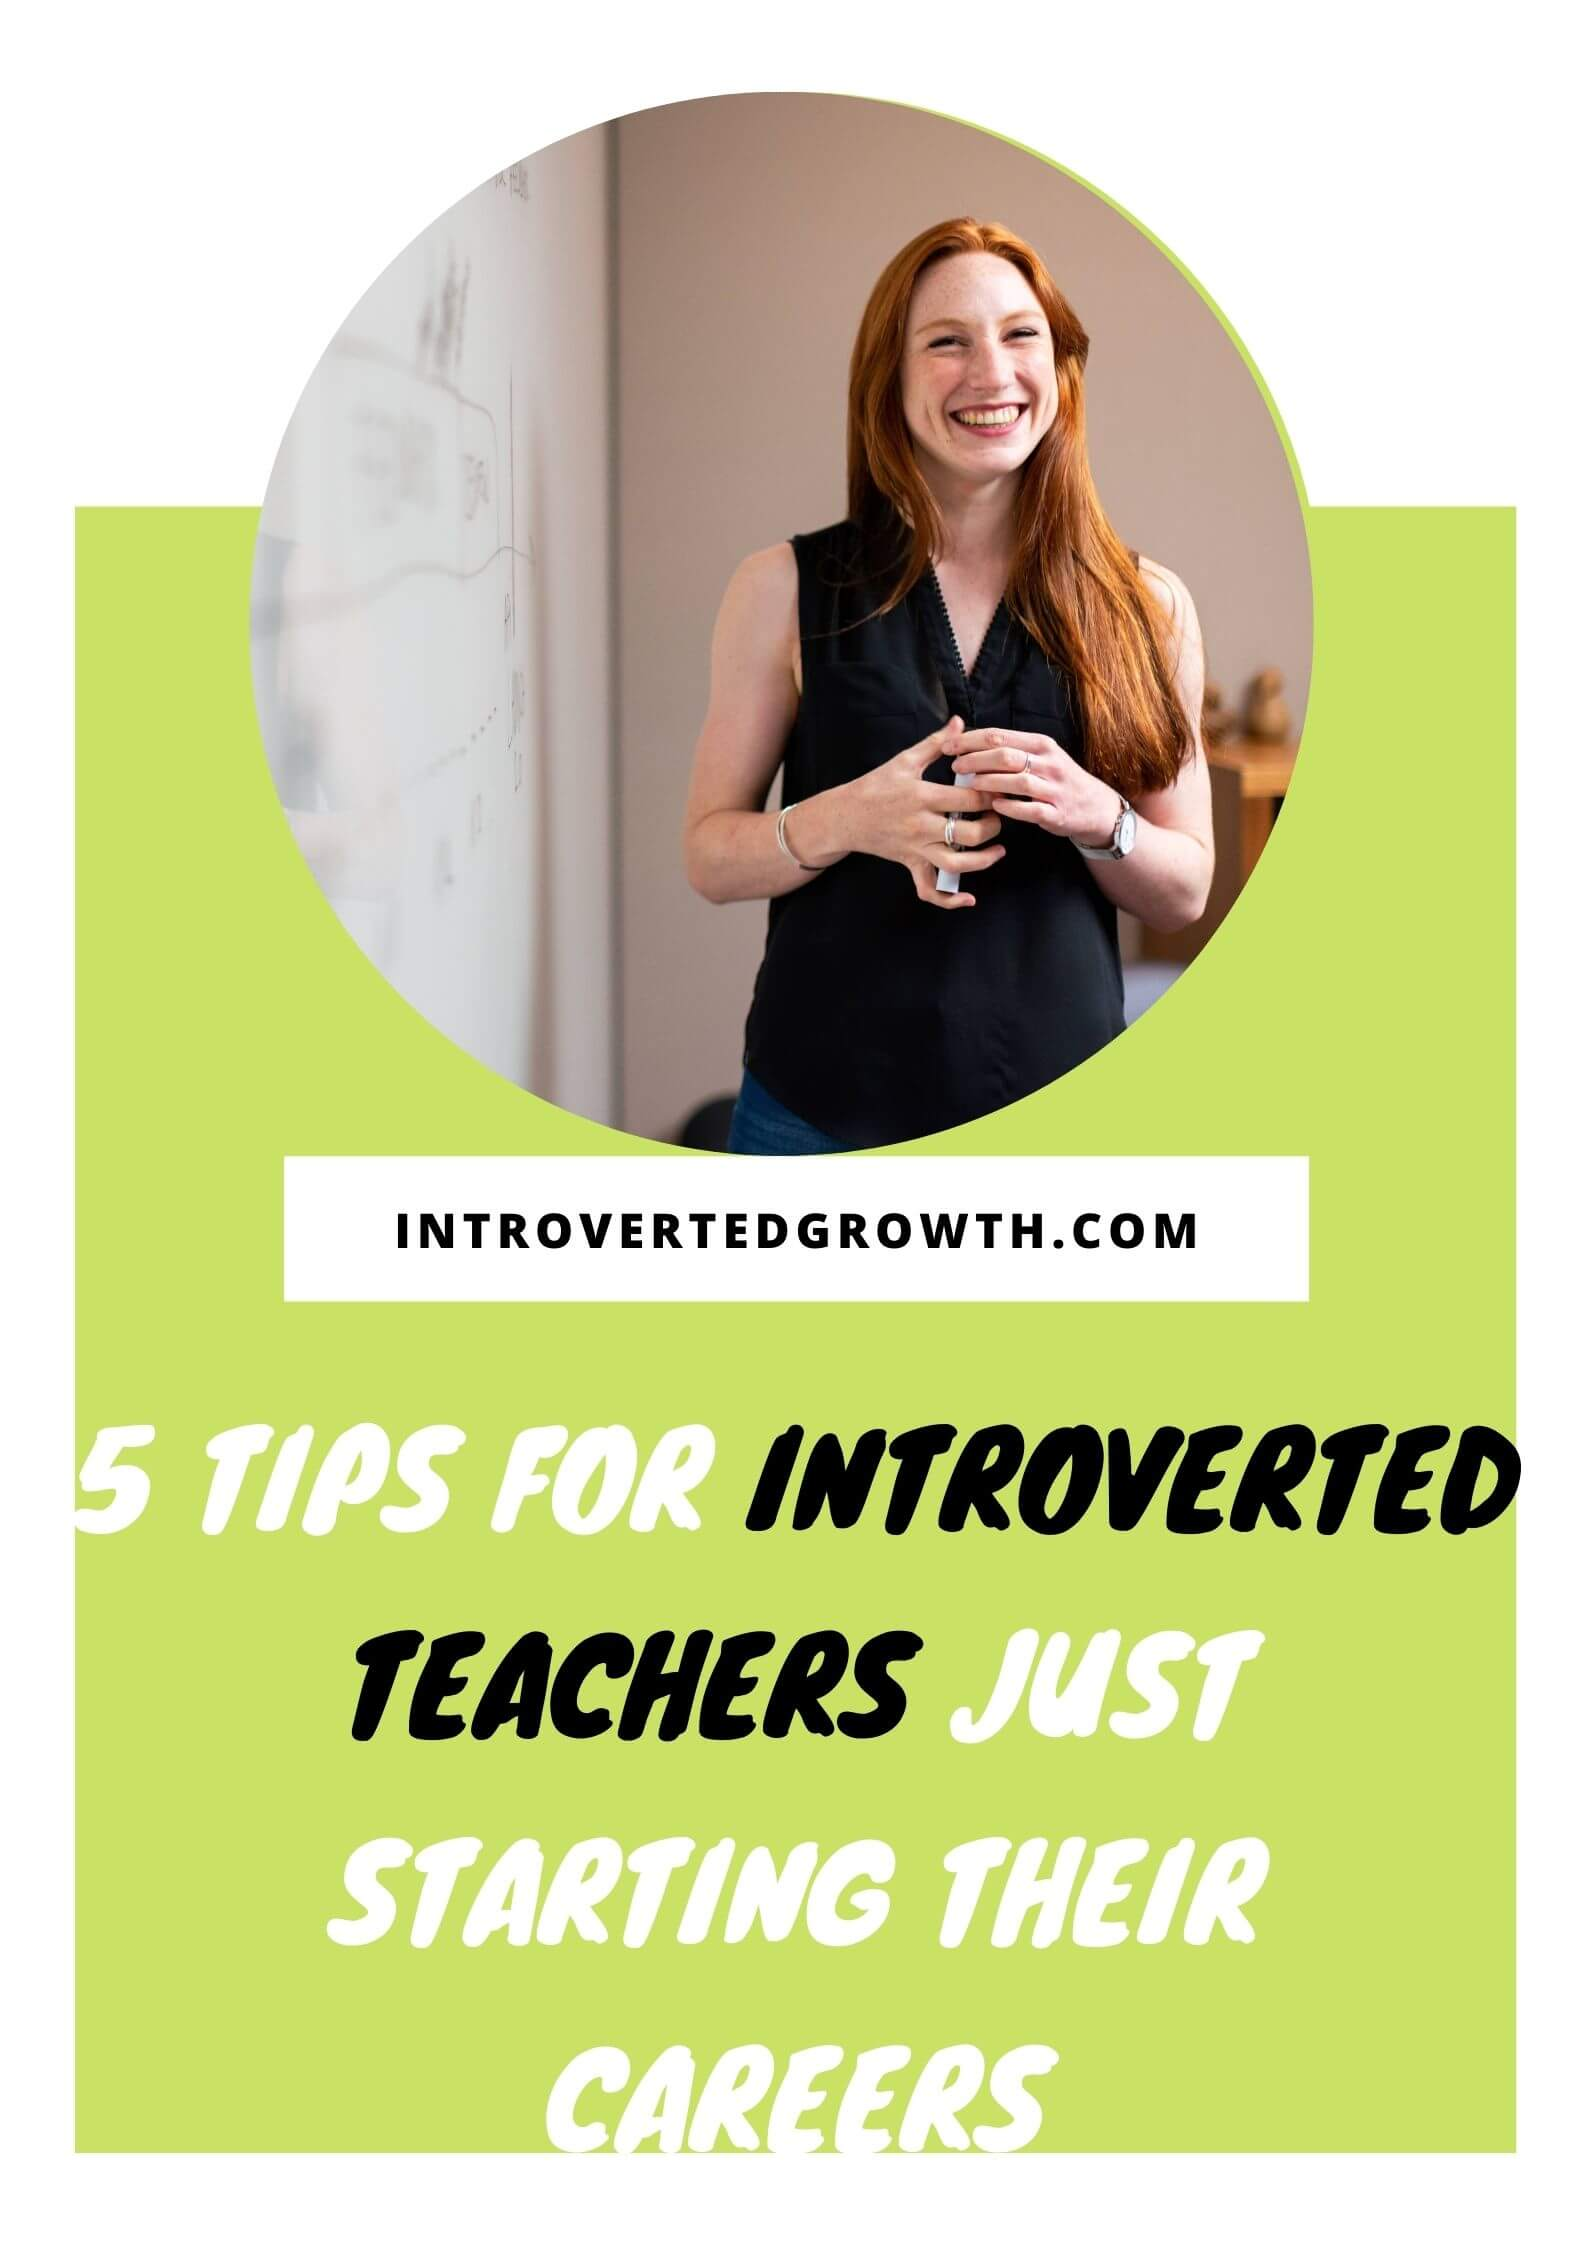 Tips For Introverted Teachers